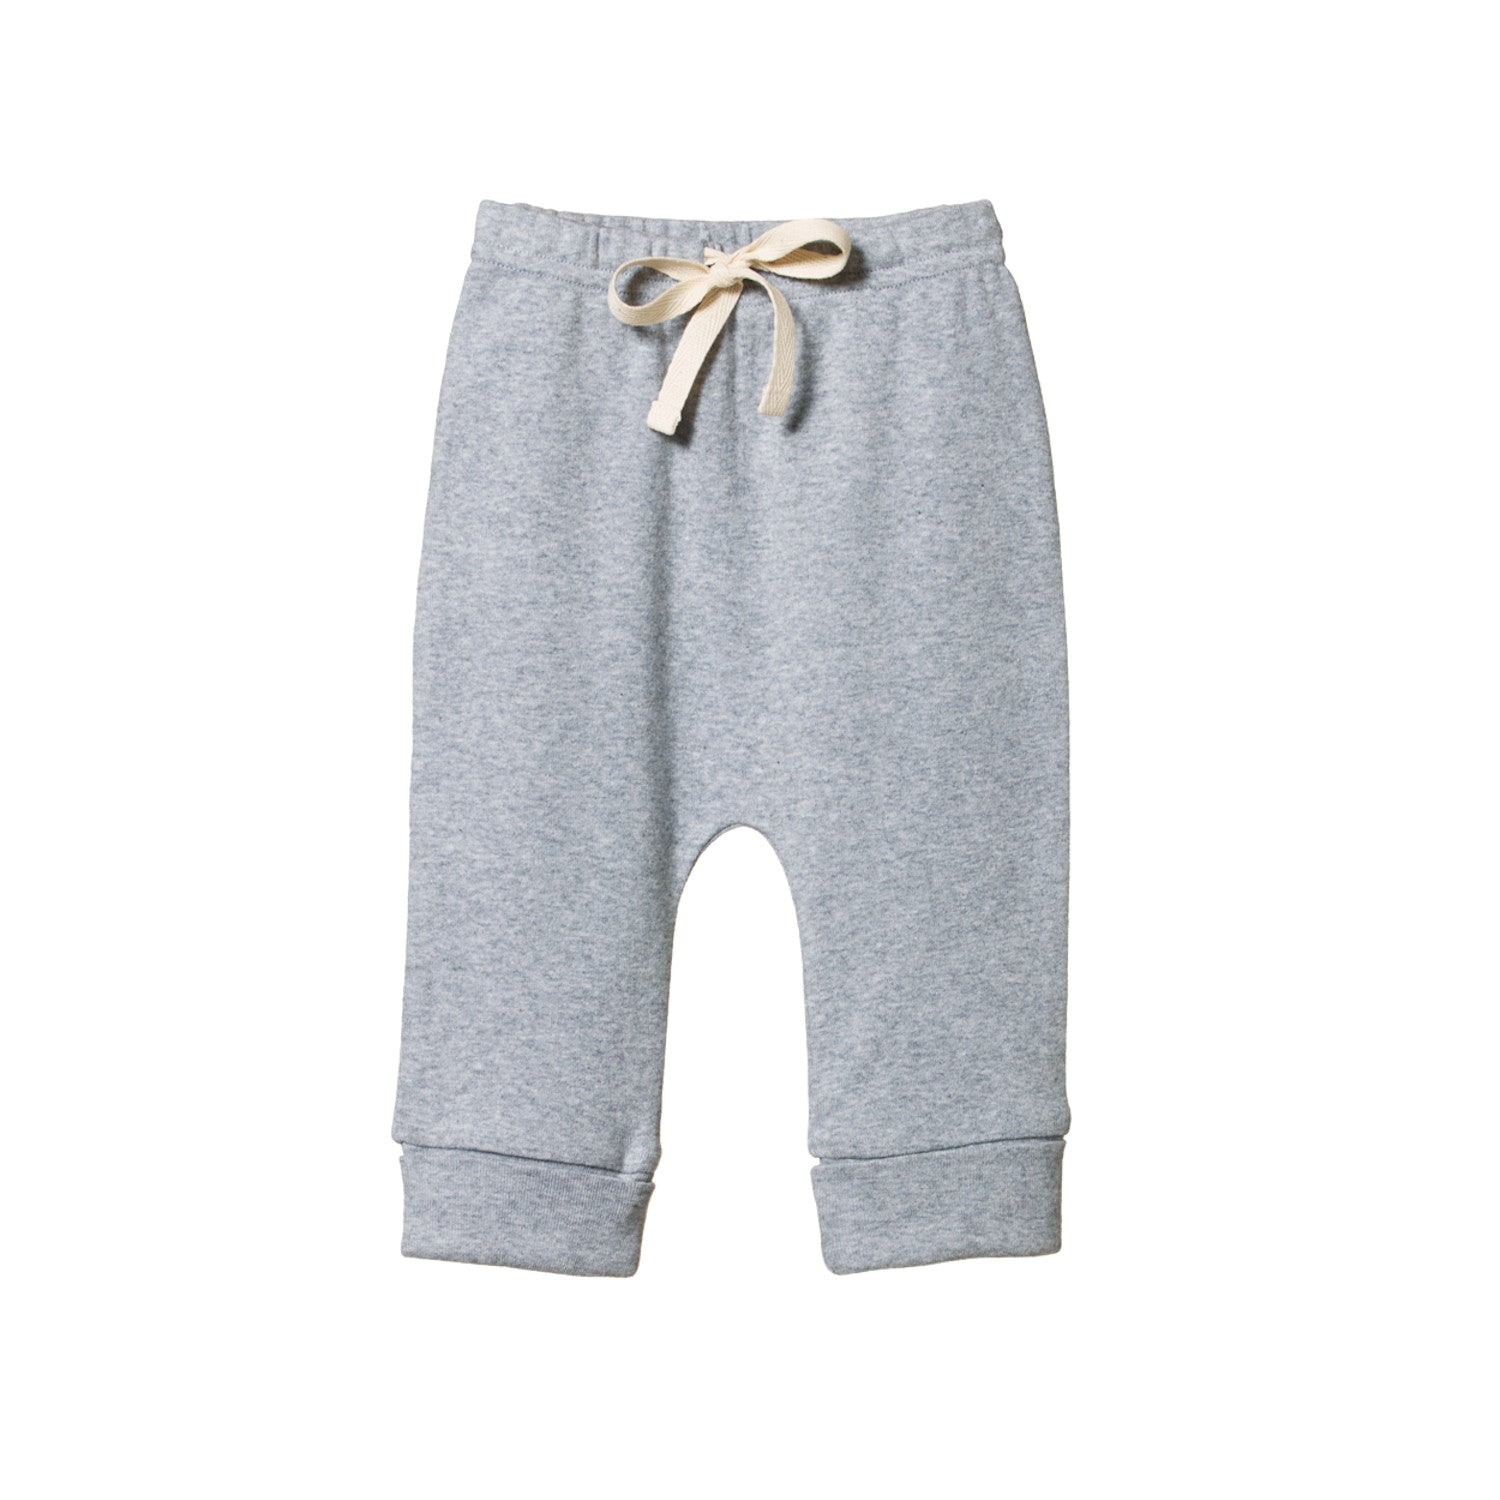 Nature Baby Cotton Drawstring Pants - Grey Marl